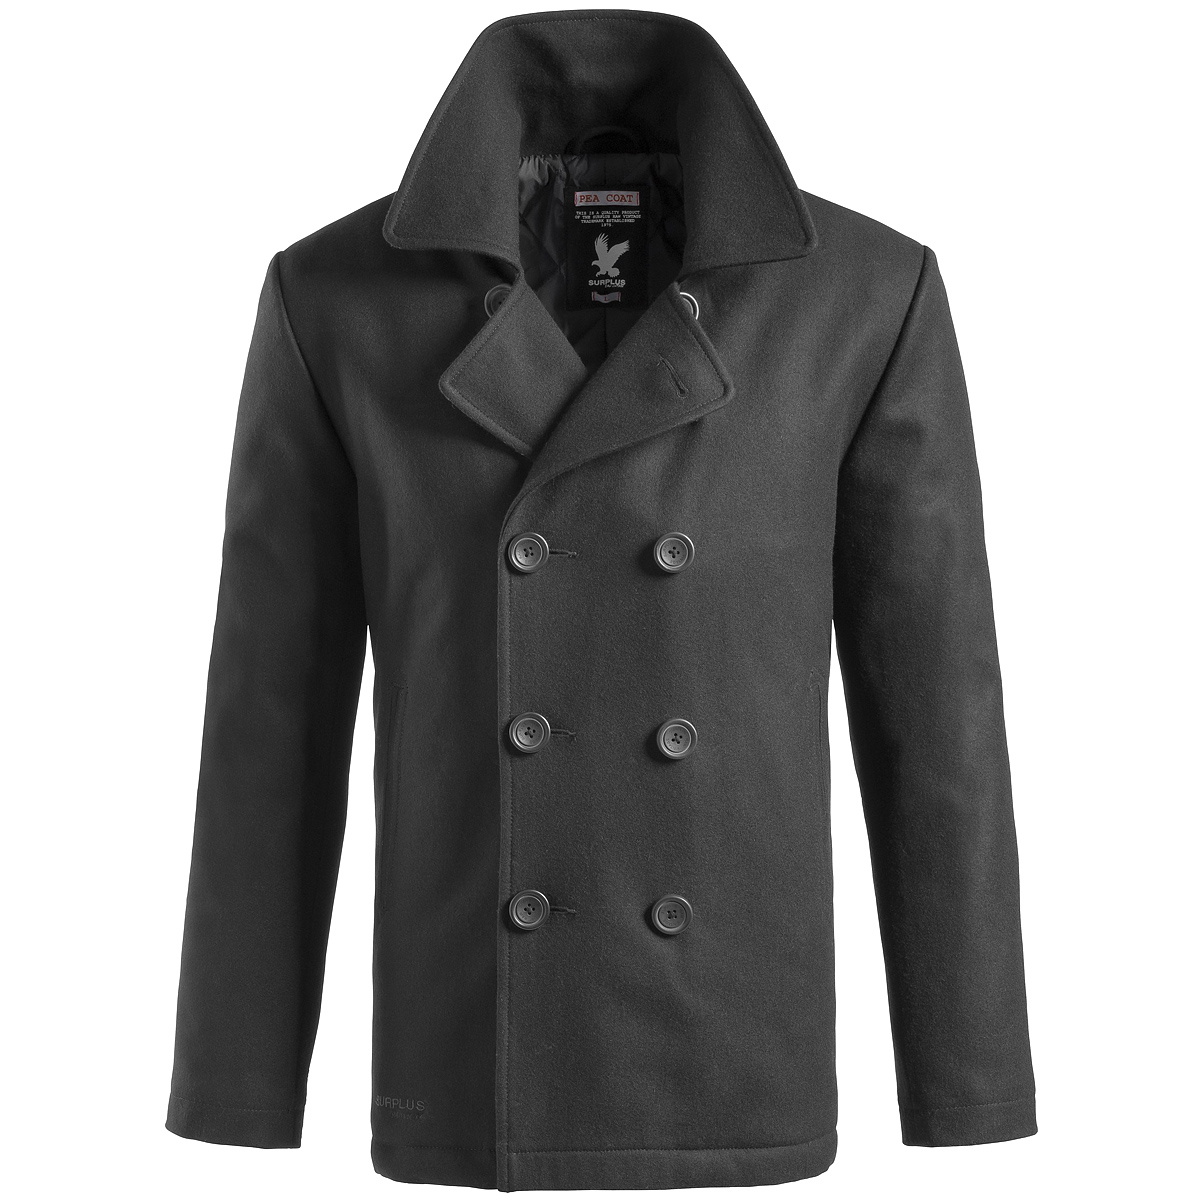 SURPLUS-US-NAVY-PEA-COAT-CLASSIC-STYLE-WARM-MENS-ARMY-REEFER-JACKET-WOOL-BLACK